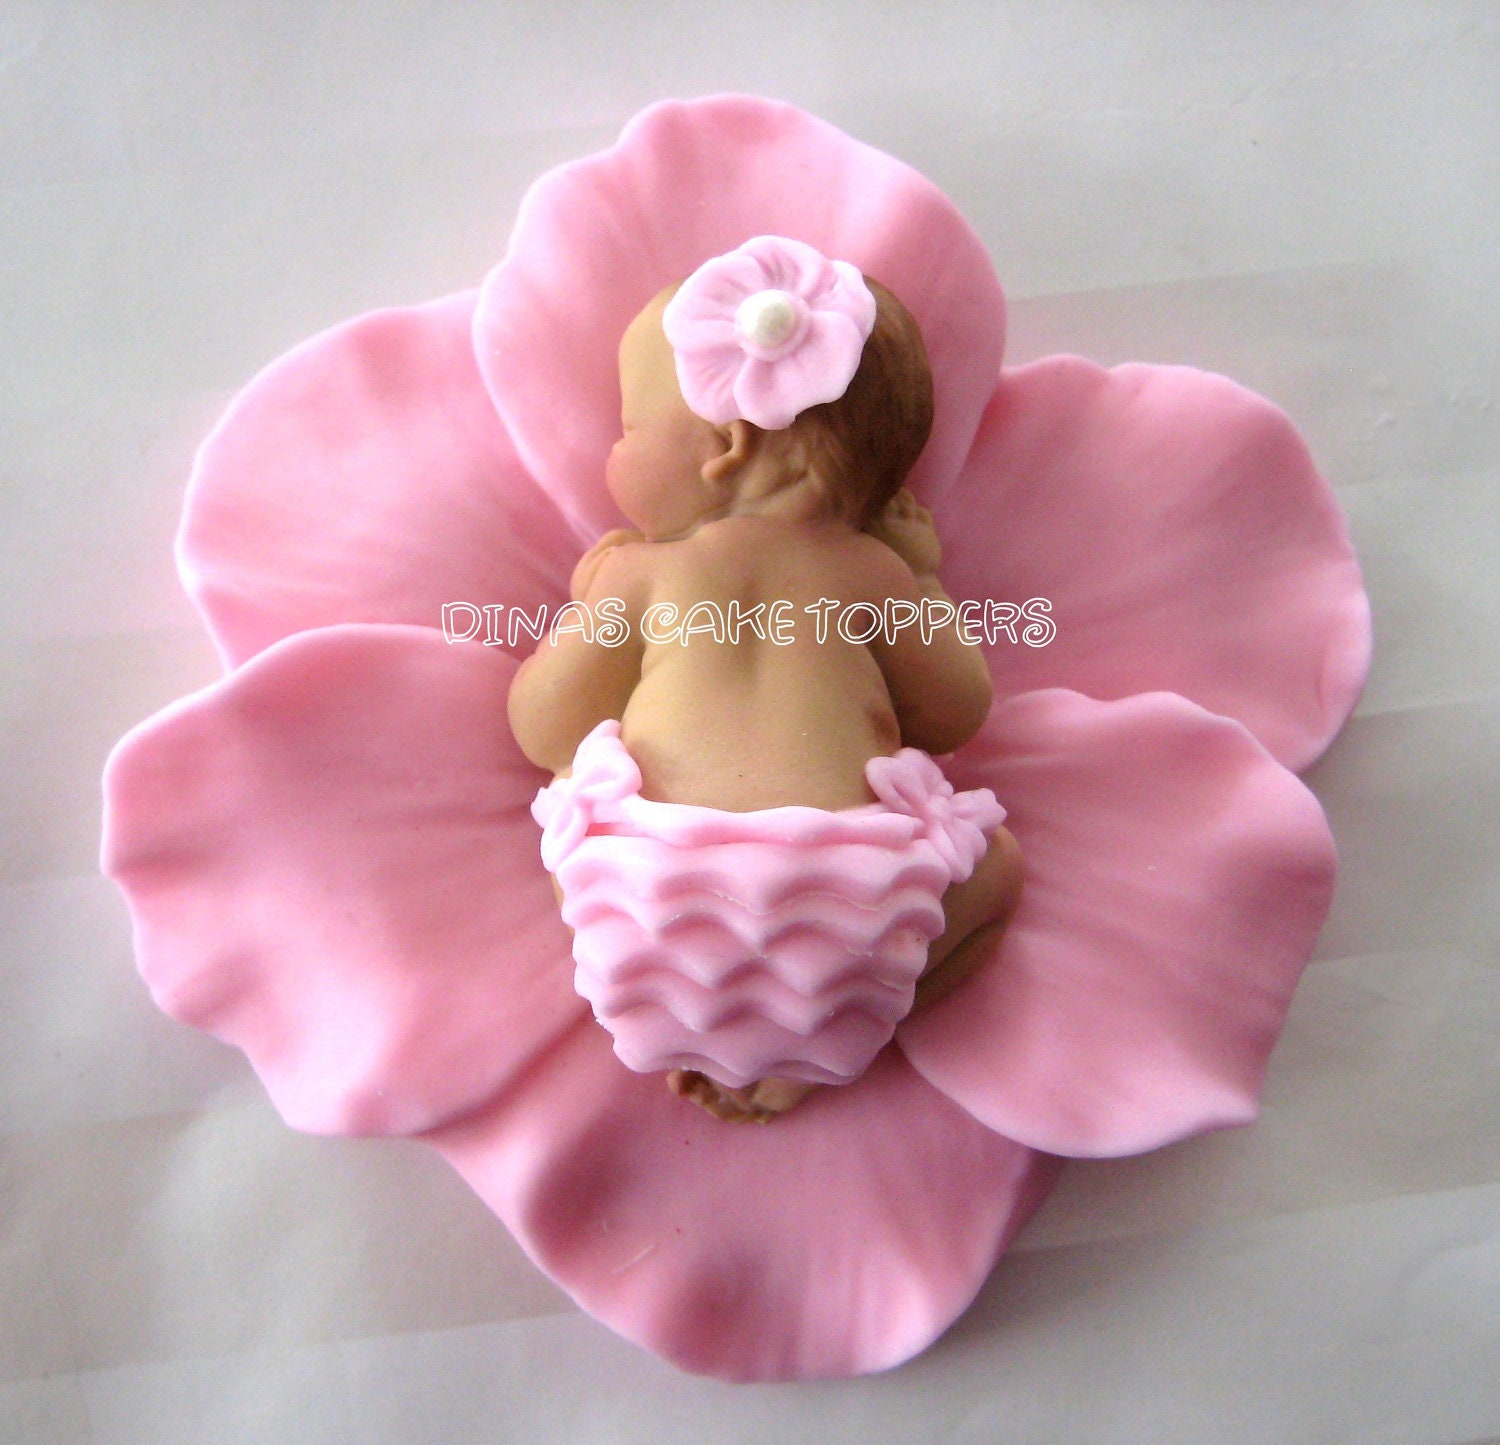 1000 images about vanessa on pinterest baby shower pink marilyn monroe art and flower cake - Wilton baby shower cake toppers ...